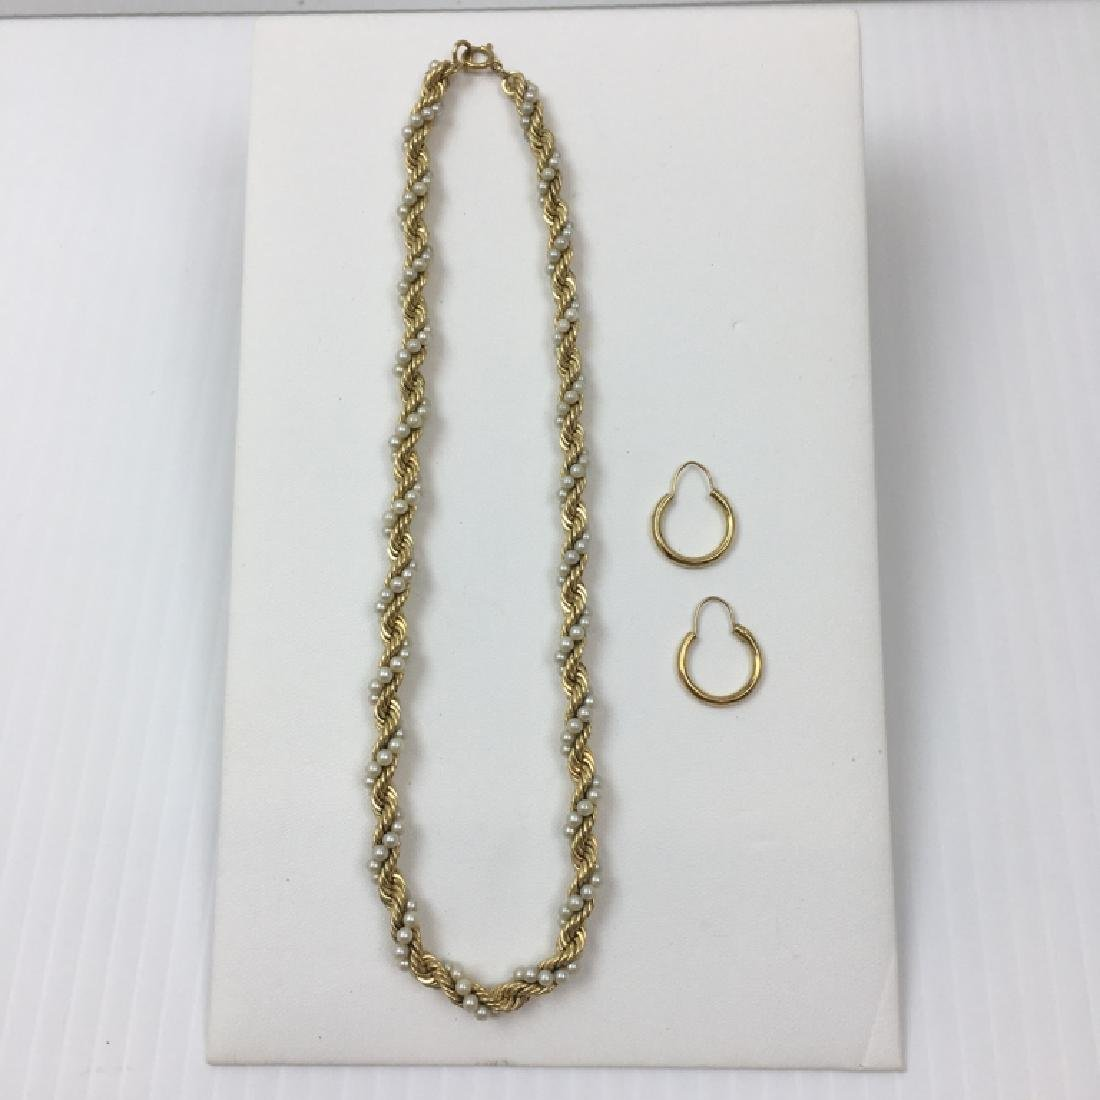 14K YELLOW GOLD NECKLACE & 14K HOOP EARRINGS